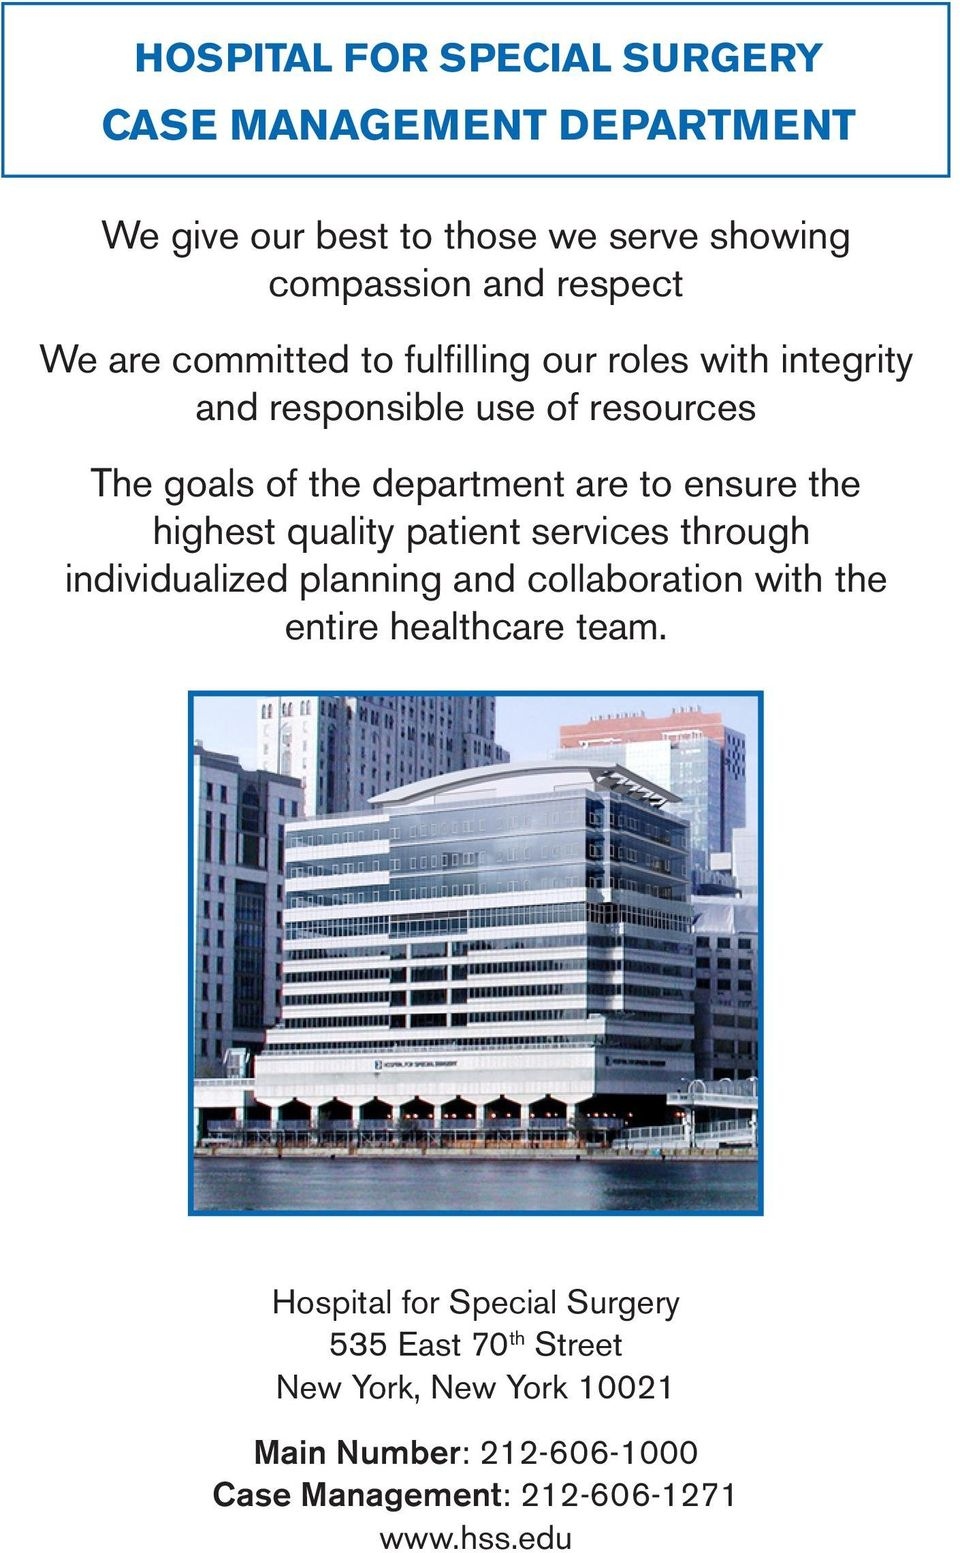 highest quality patient services through individualized planning and collaboration with the entire healthcare team.